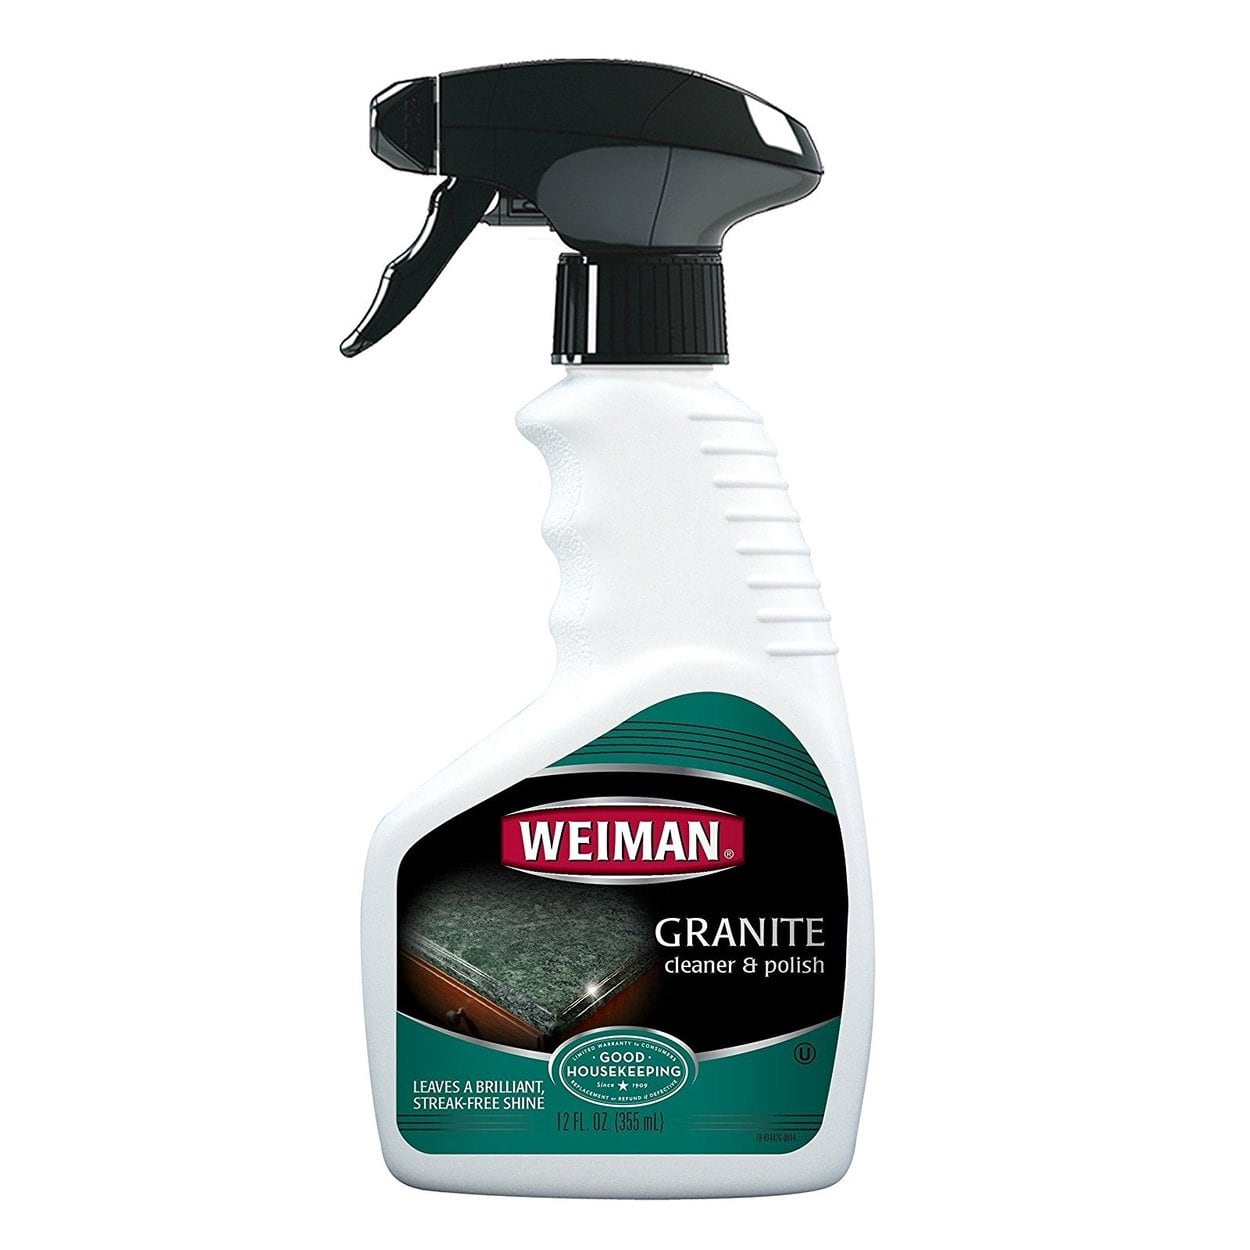 Weiman Granite Cleaner & Polish Trigger 355ml